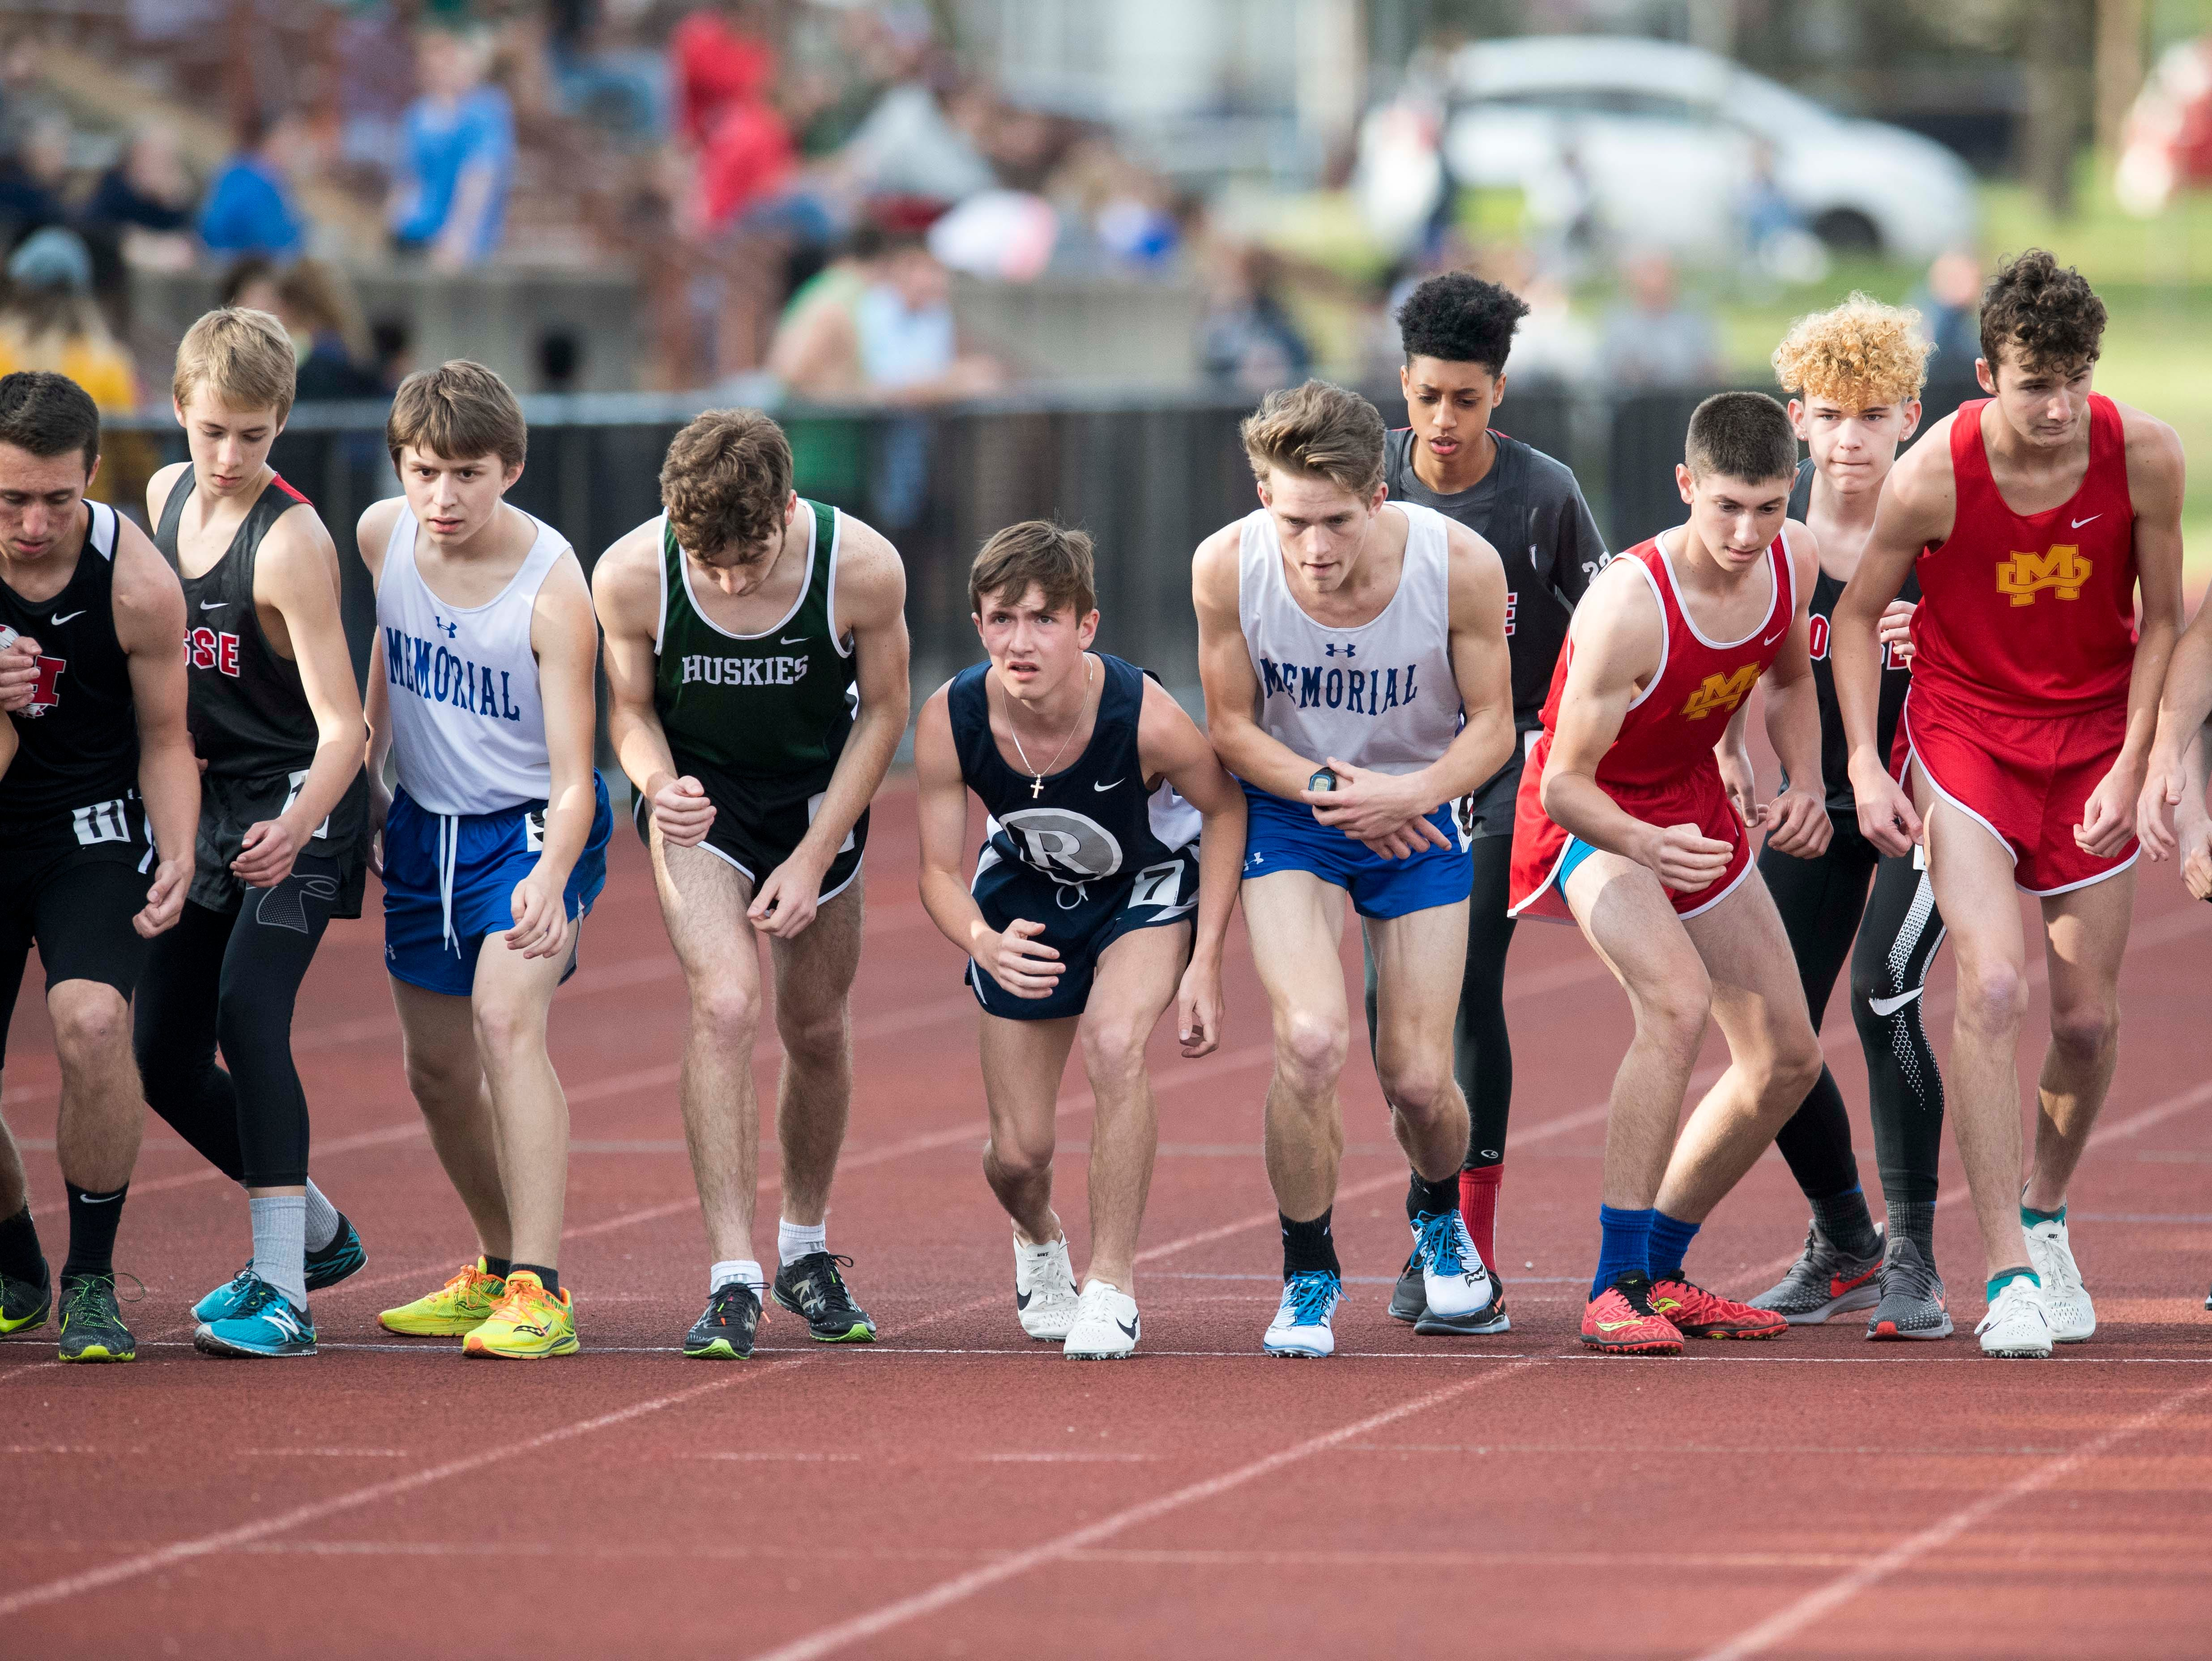 Runs set for the boys 1600m run during the 2019 City Track and Field meet at Central High School Friday, April 12, 2019.